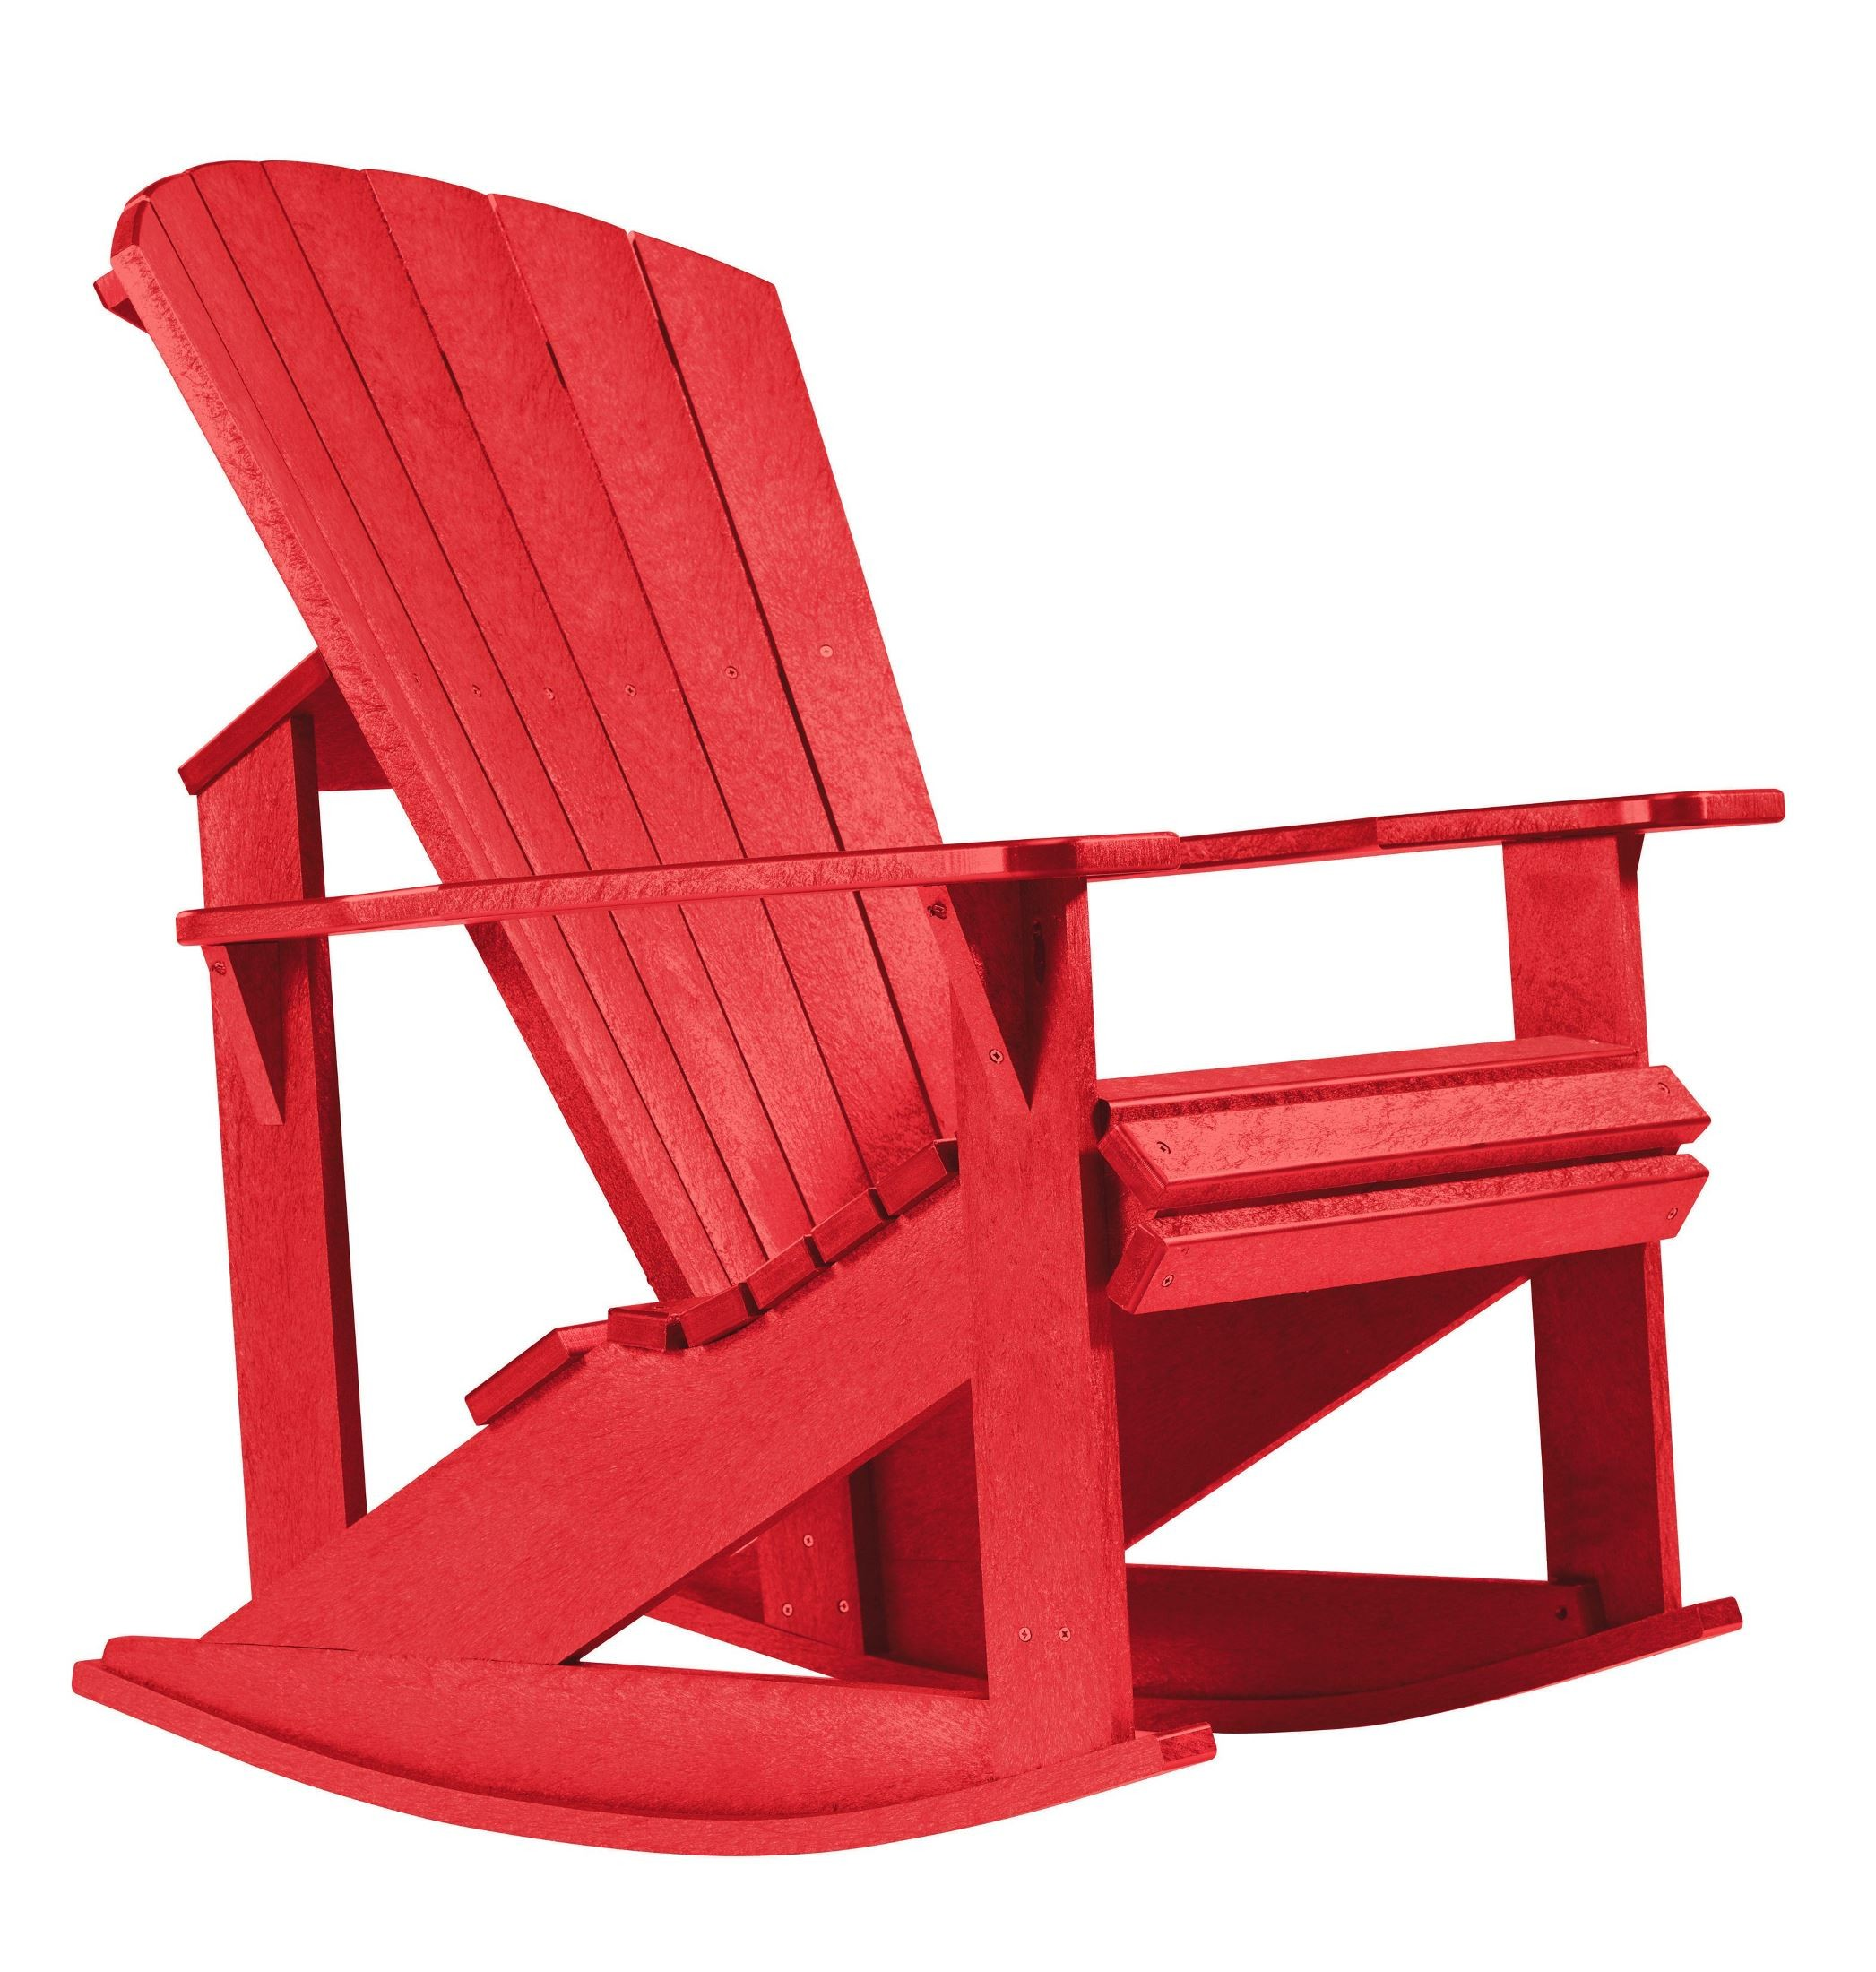 Red Adirondack Chairs Generations Red Adirondack Rocking Chair From Cr Plastic